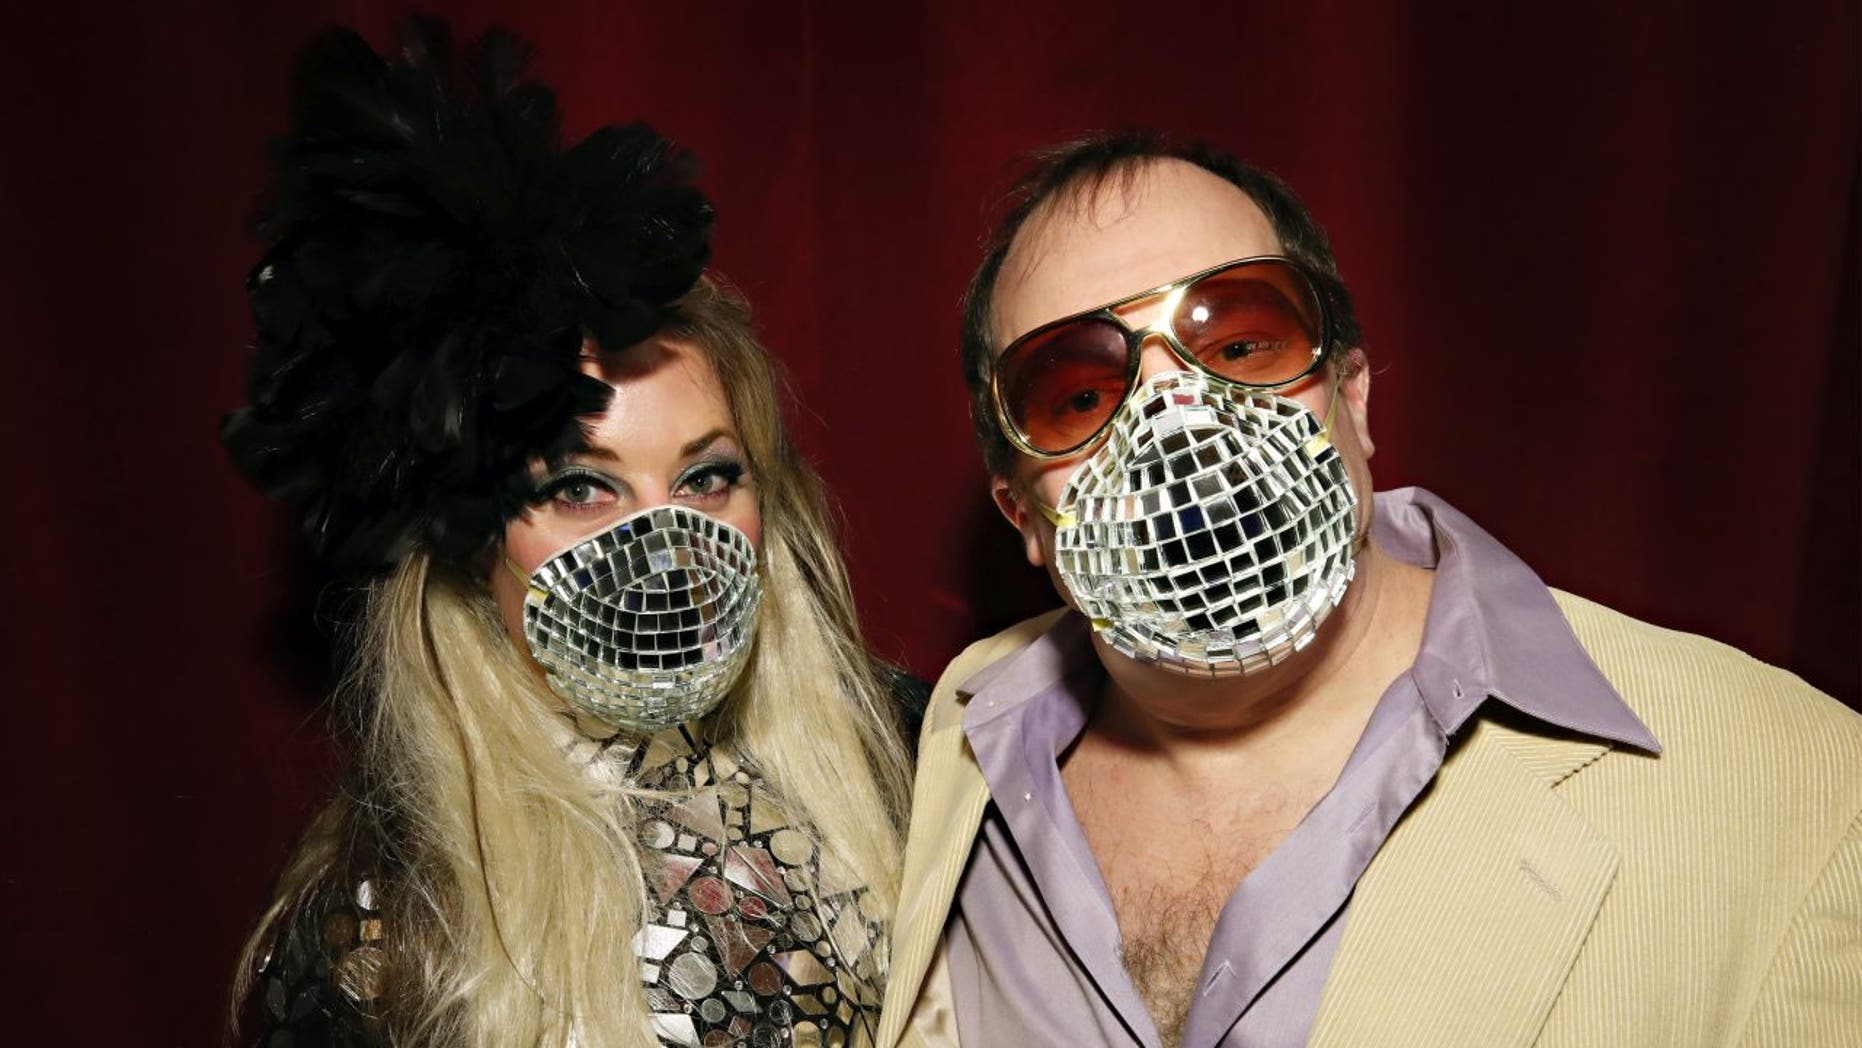 """Allison Eden and Gary Goldenstein wear decorated masks inspired by the Coronavirus disease (COVID-19) threats during """"Studio 54: Night Magic"""" Opening Night at the Brooklyn Museum on March 11, 2020."""